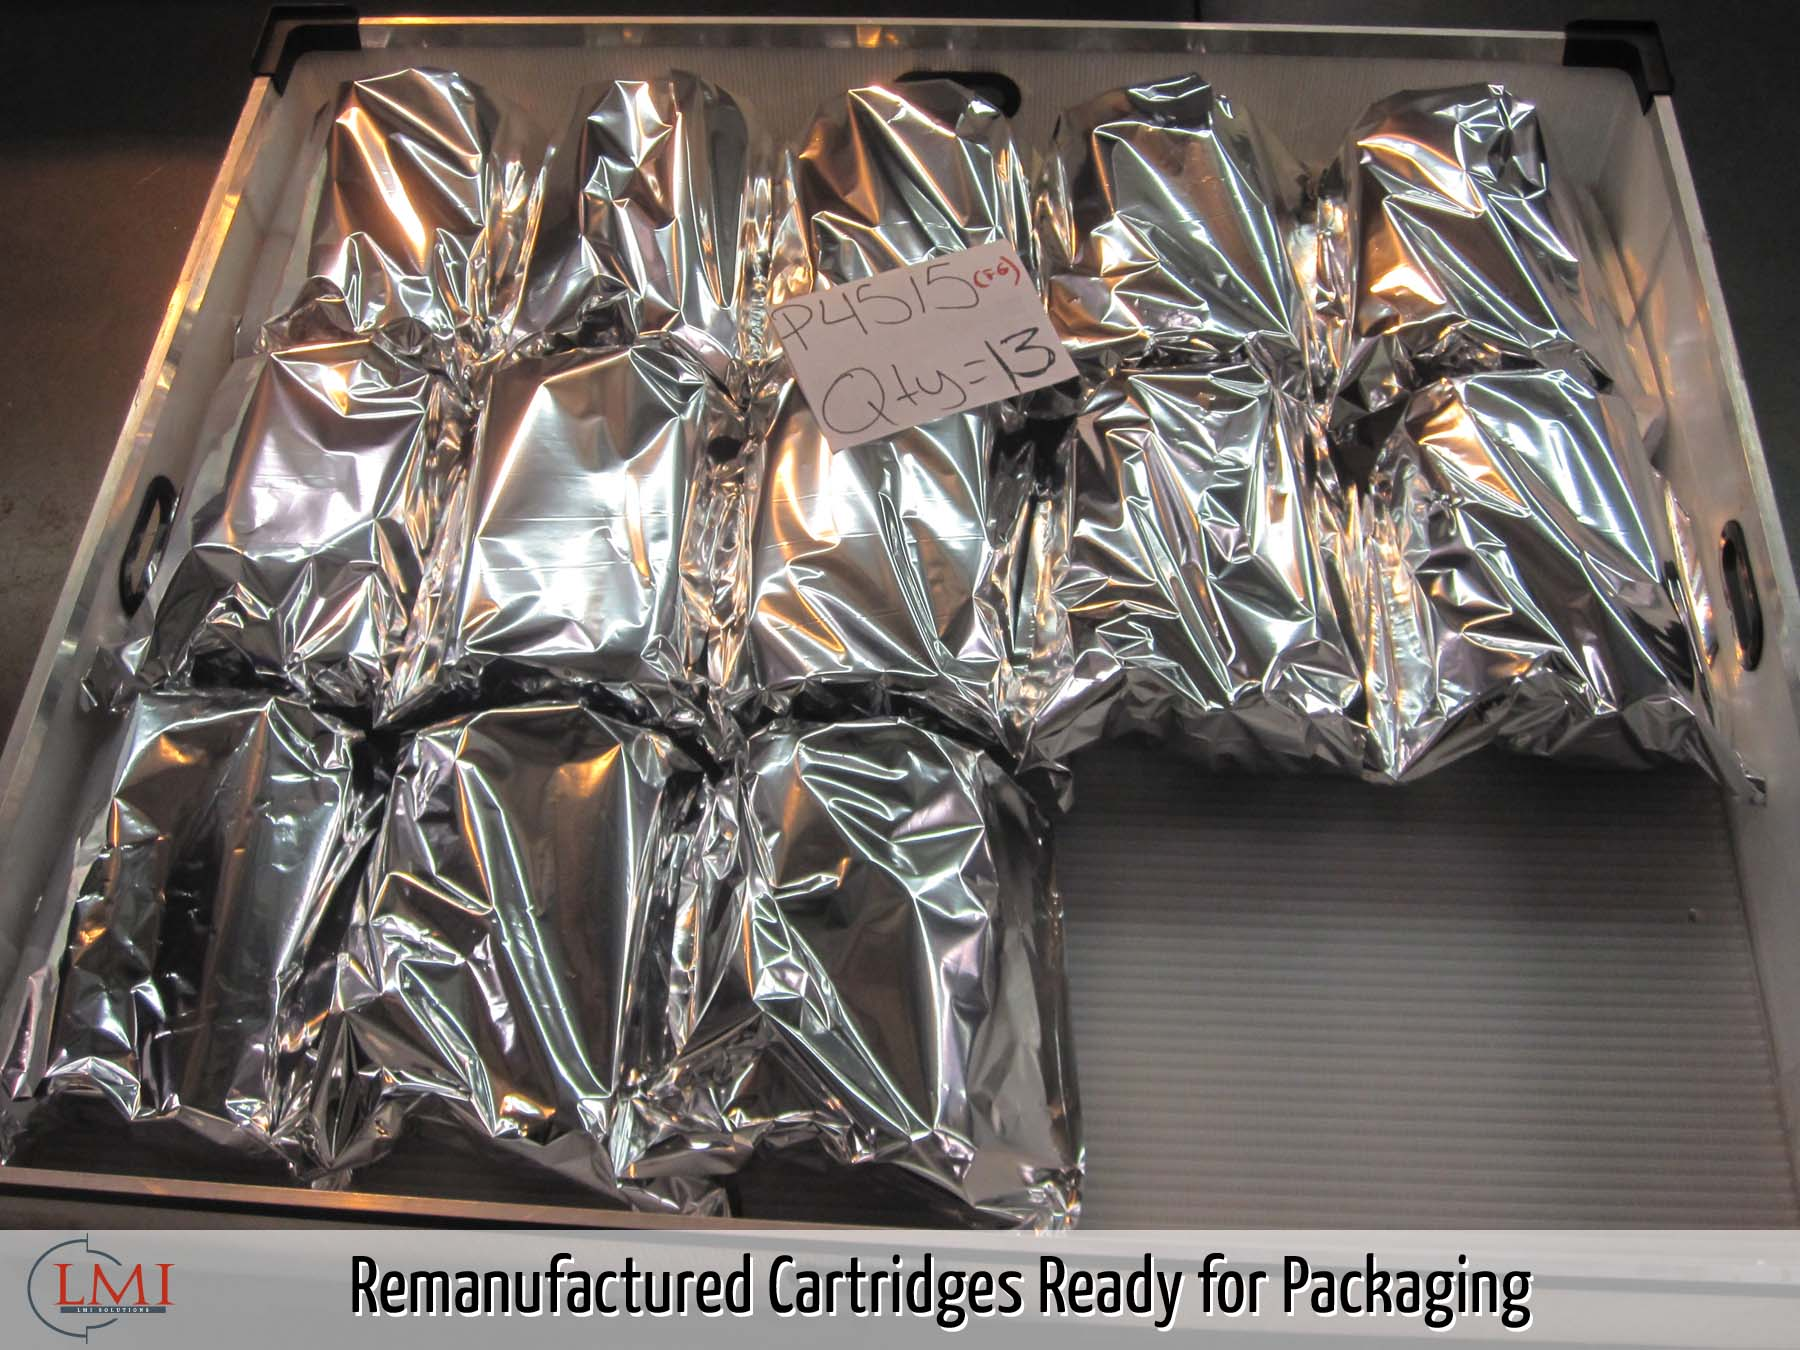 Remanufactured Cartridges Ready for Packaging